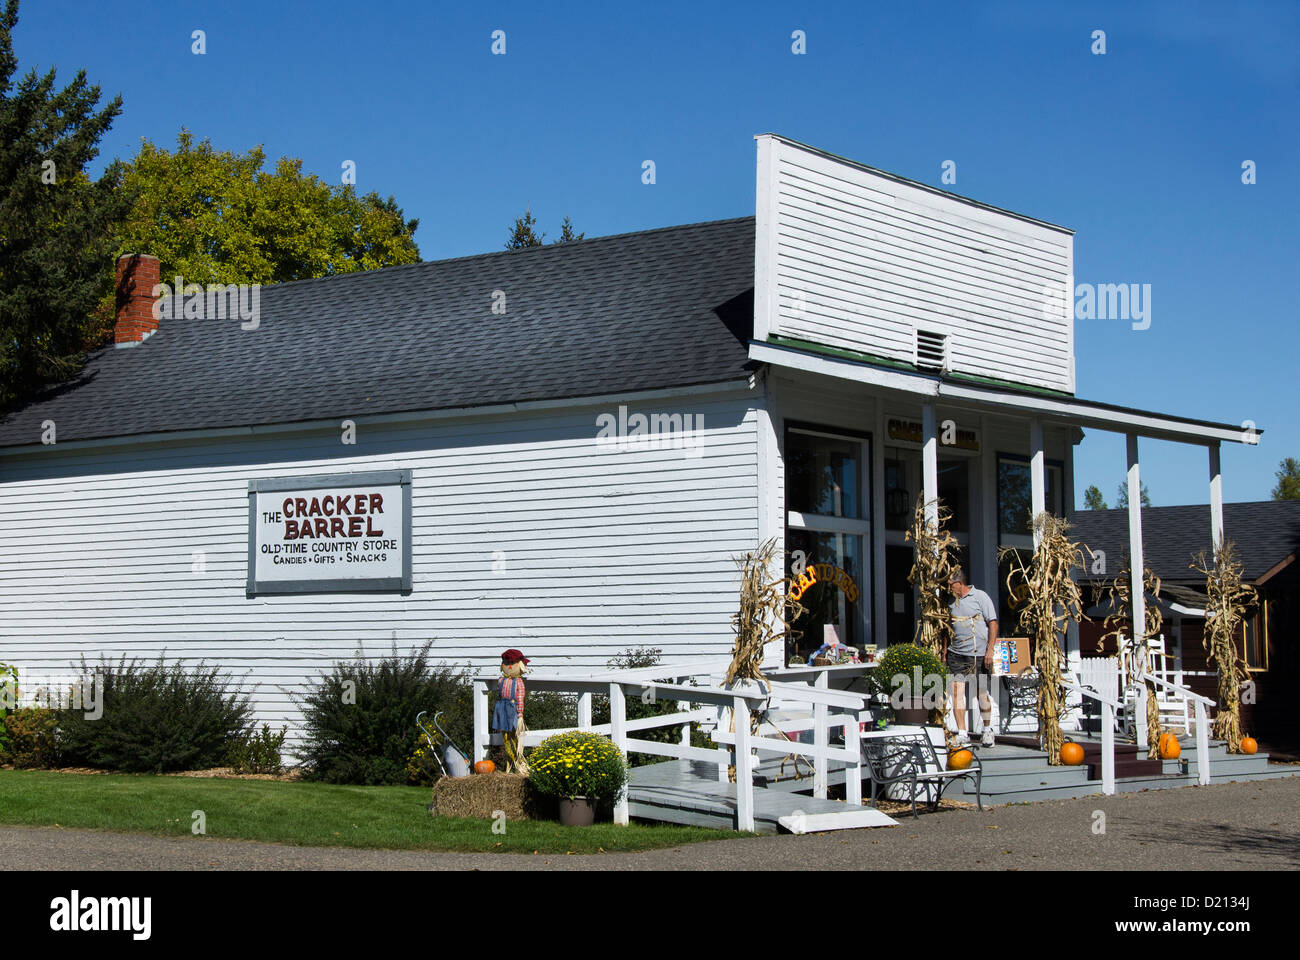 Cracker Barrel Old Time Country Store Camp 5 Logging Camp - Stock Image